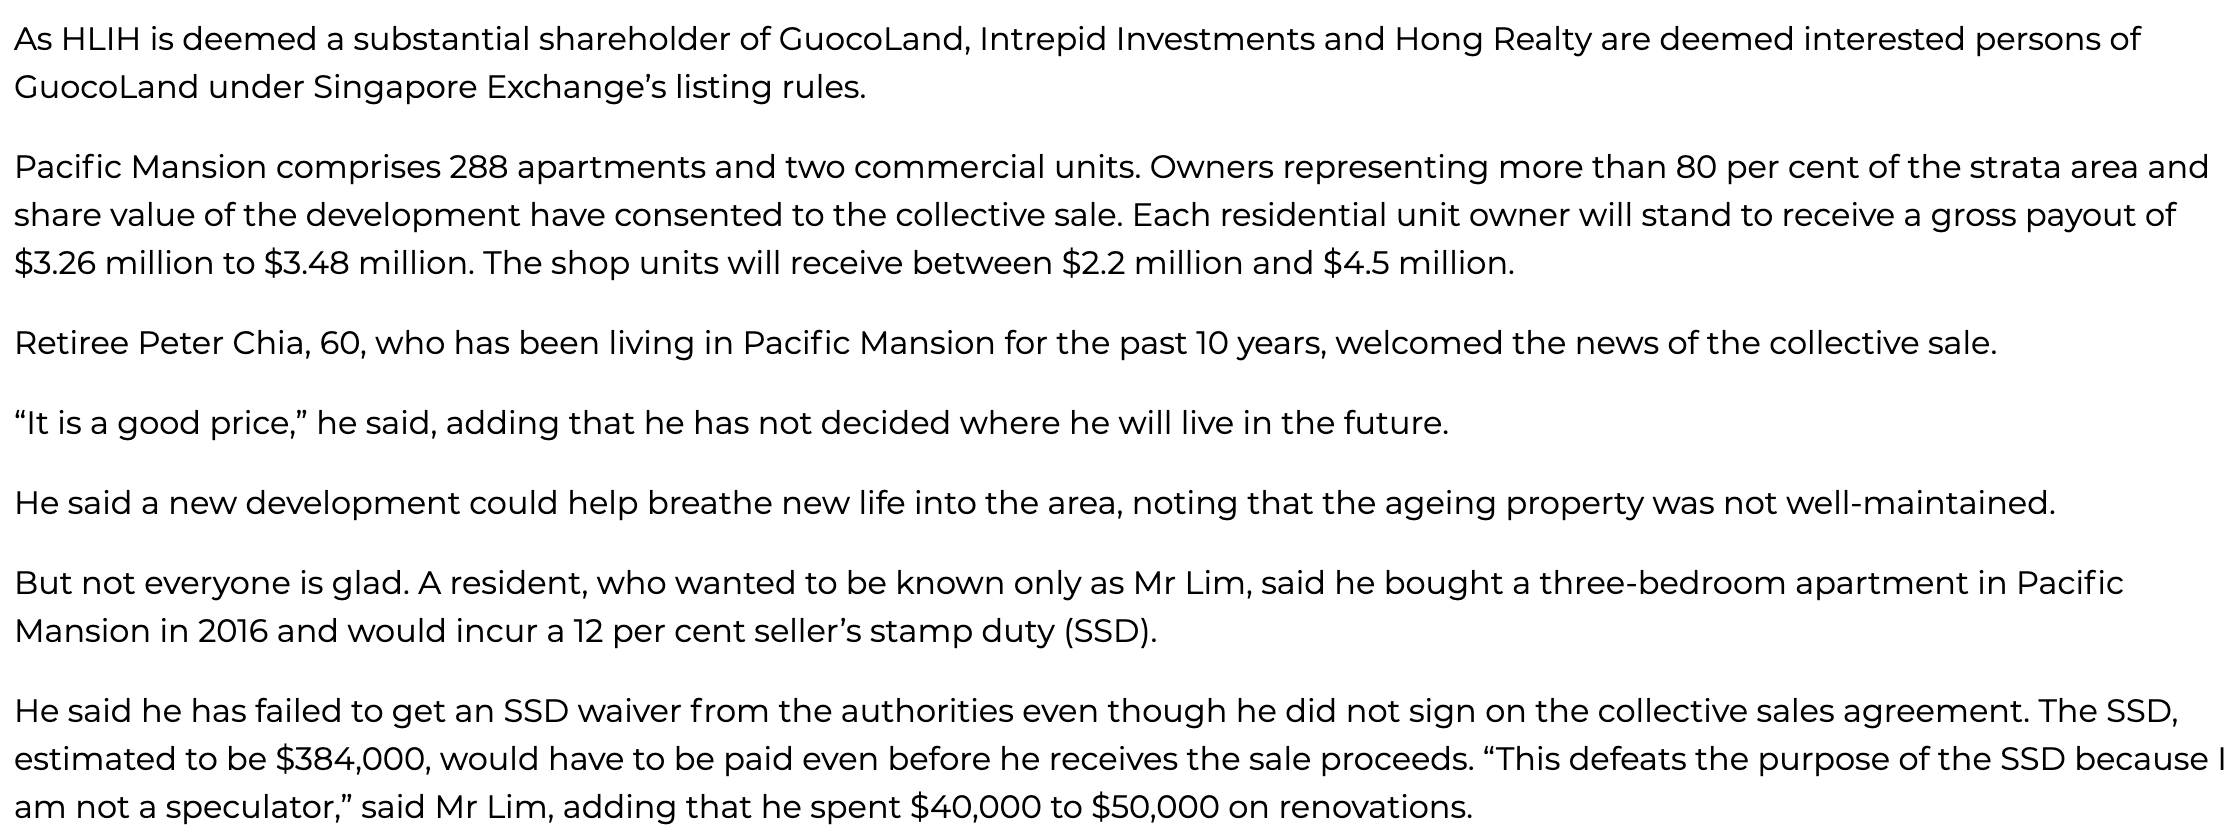 pacific-mansion-sold-en-bloc-for-$980m-in-second-highest-deal-2